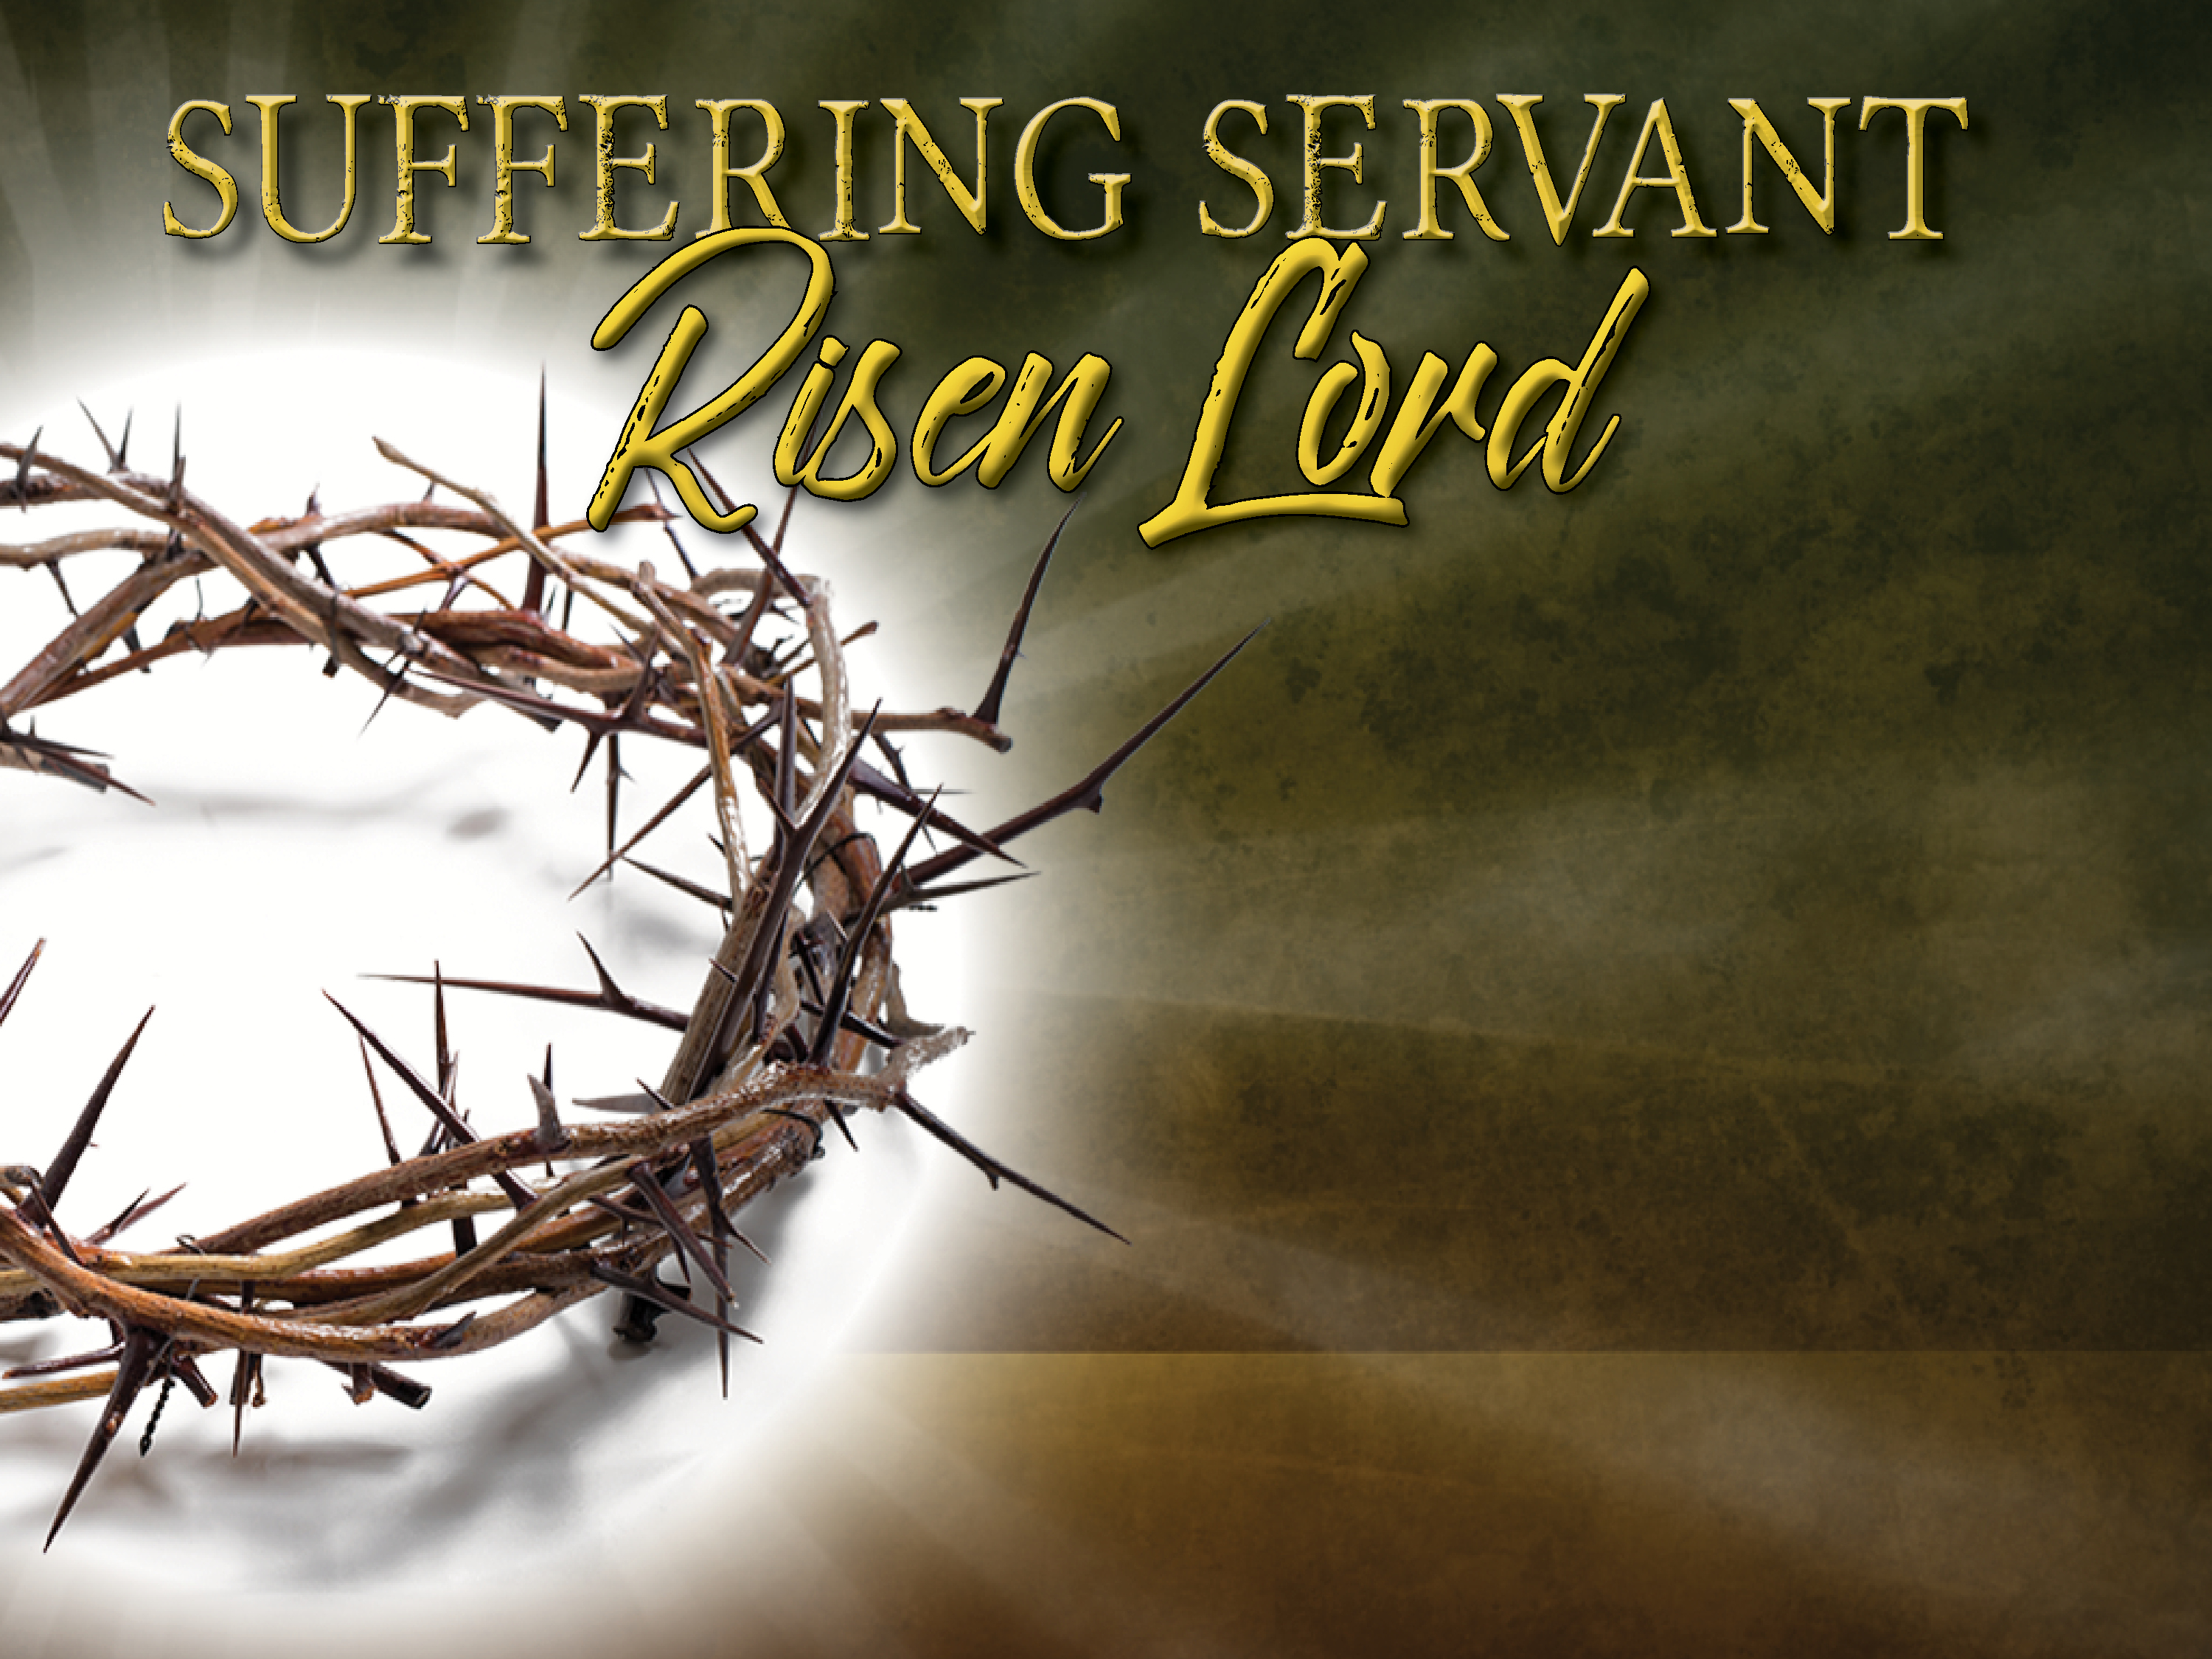 Suffering Servant, Risen Lord: All Things New